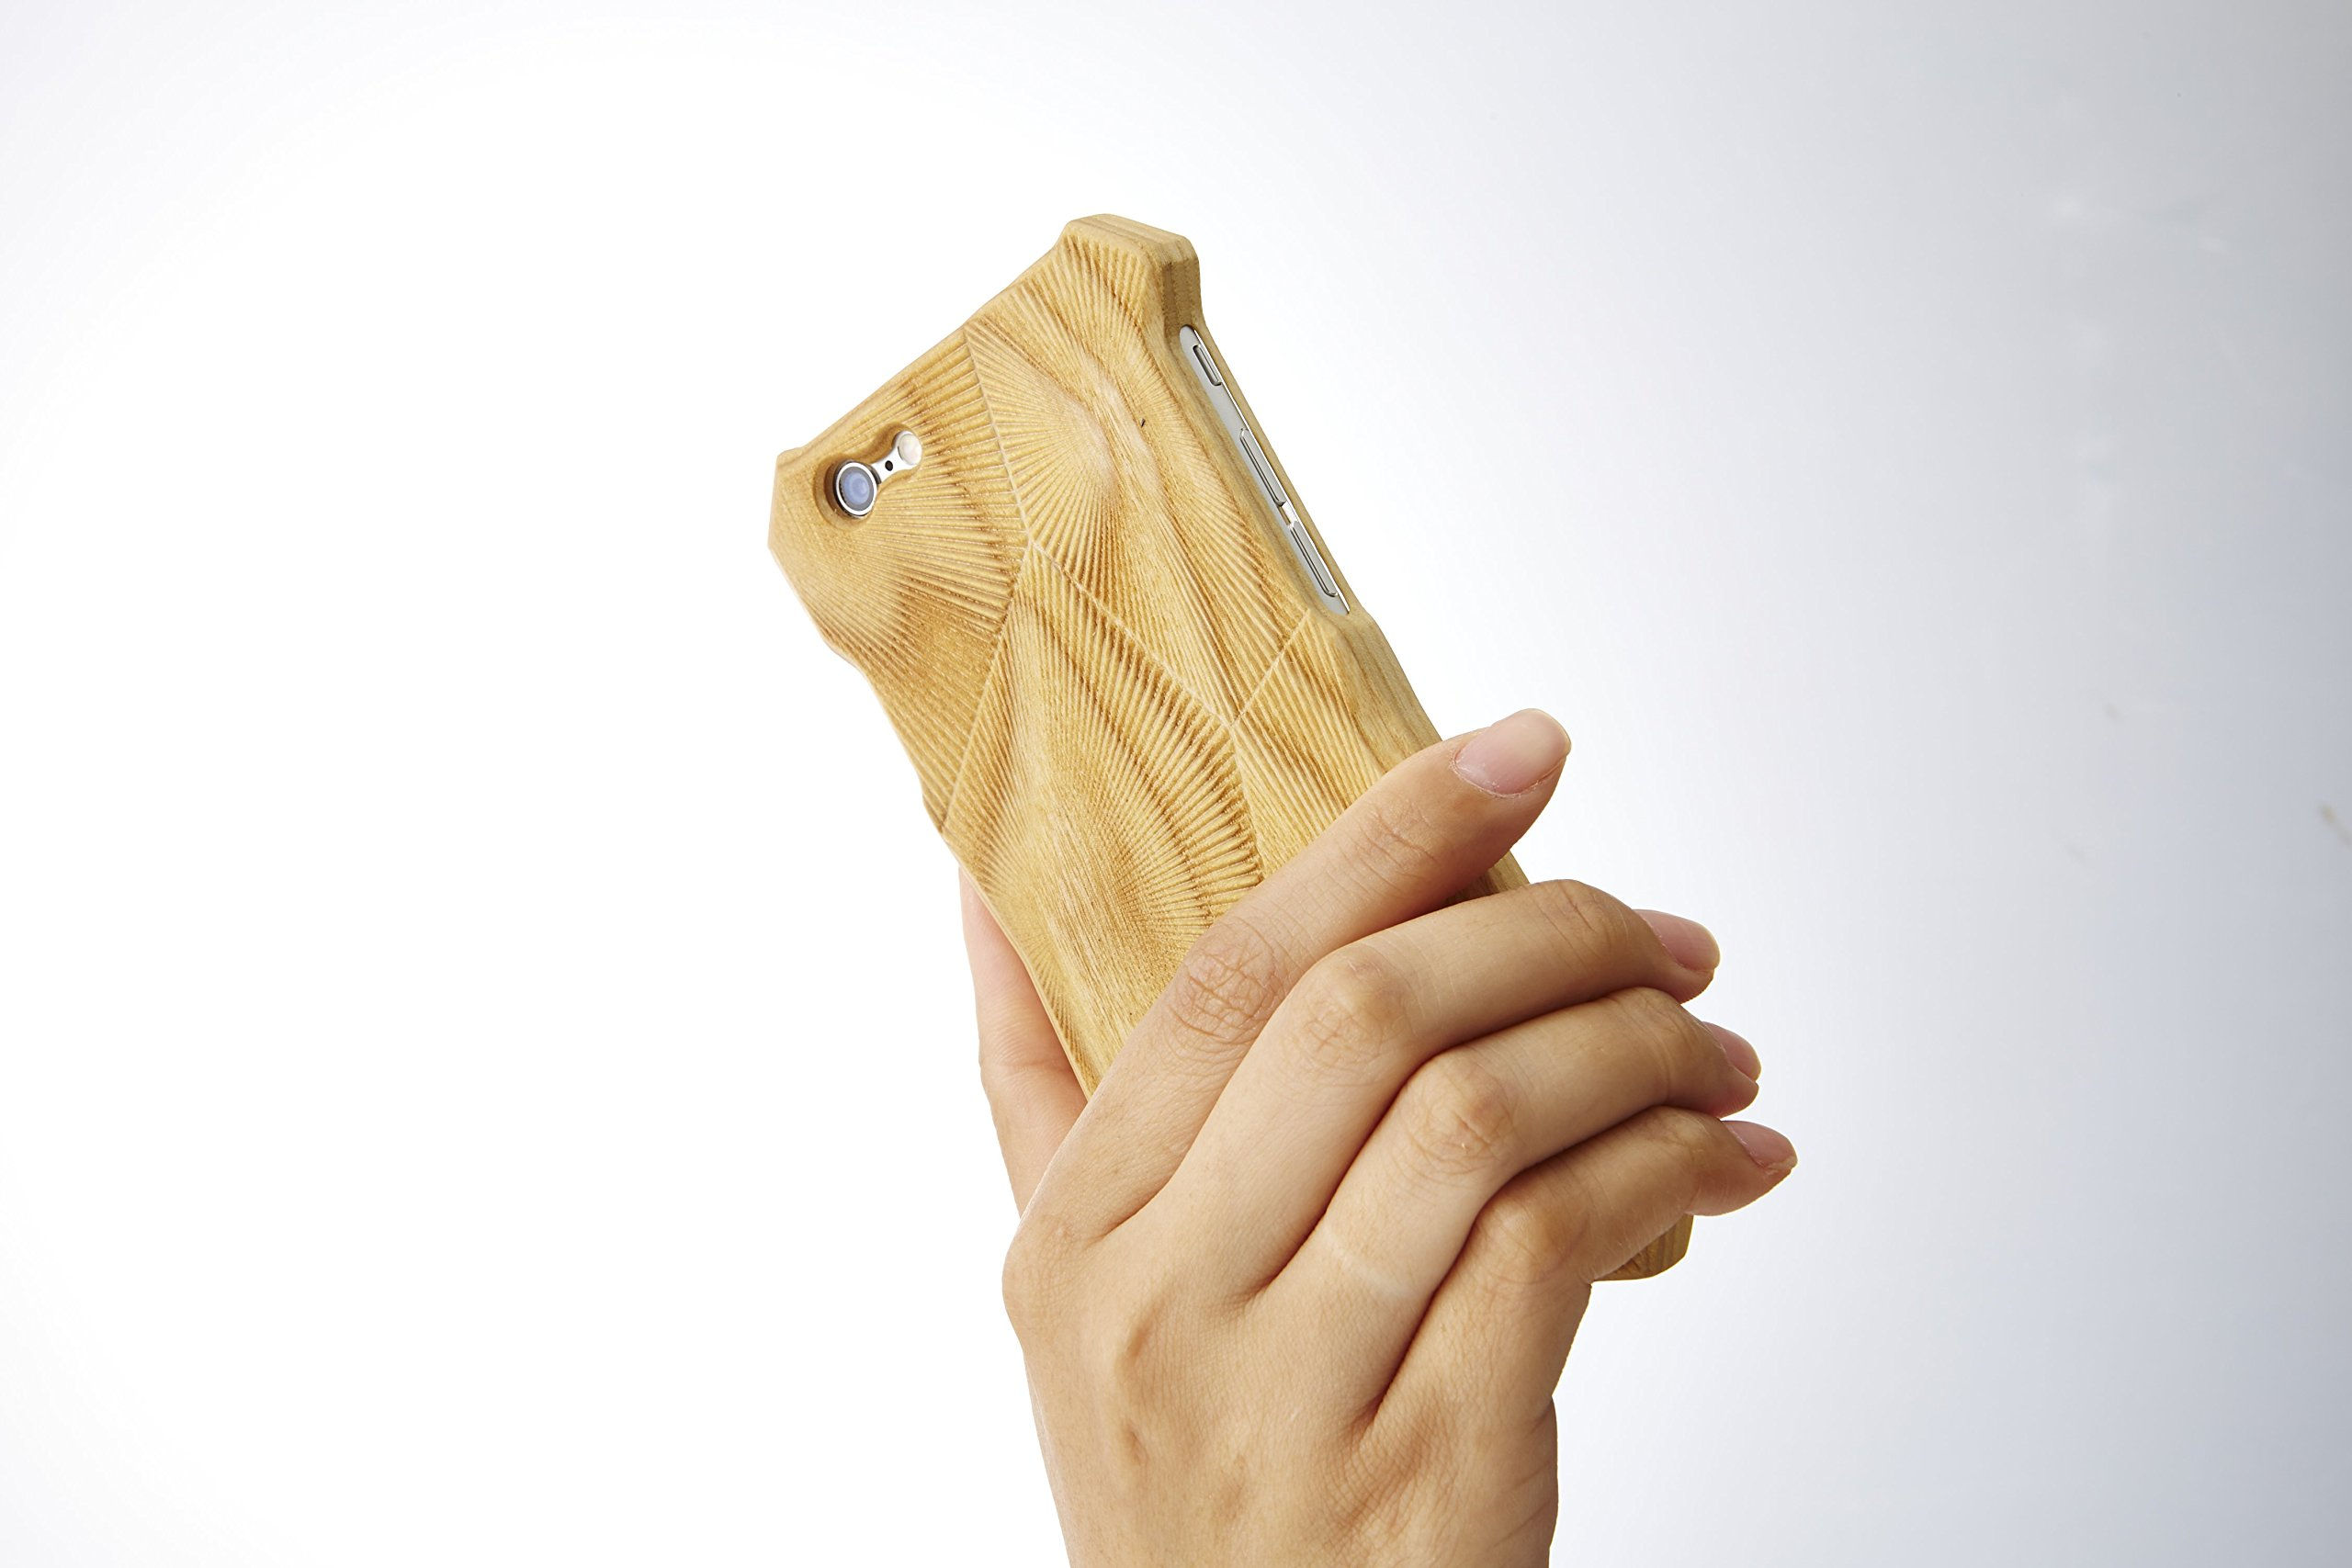 Simplism+   HIBIKI Case   iPhone 6   High-Quality Hand Crafted Design   100% Real Ash Wood   Vibration Suppression   Amplified Quality of Sound   Made in Japan